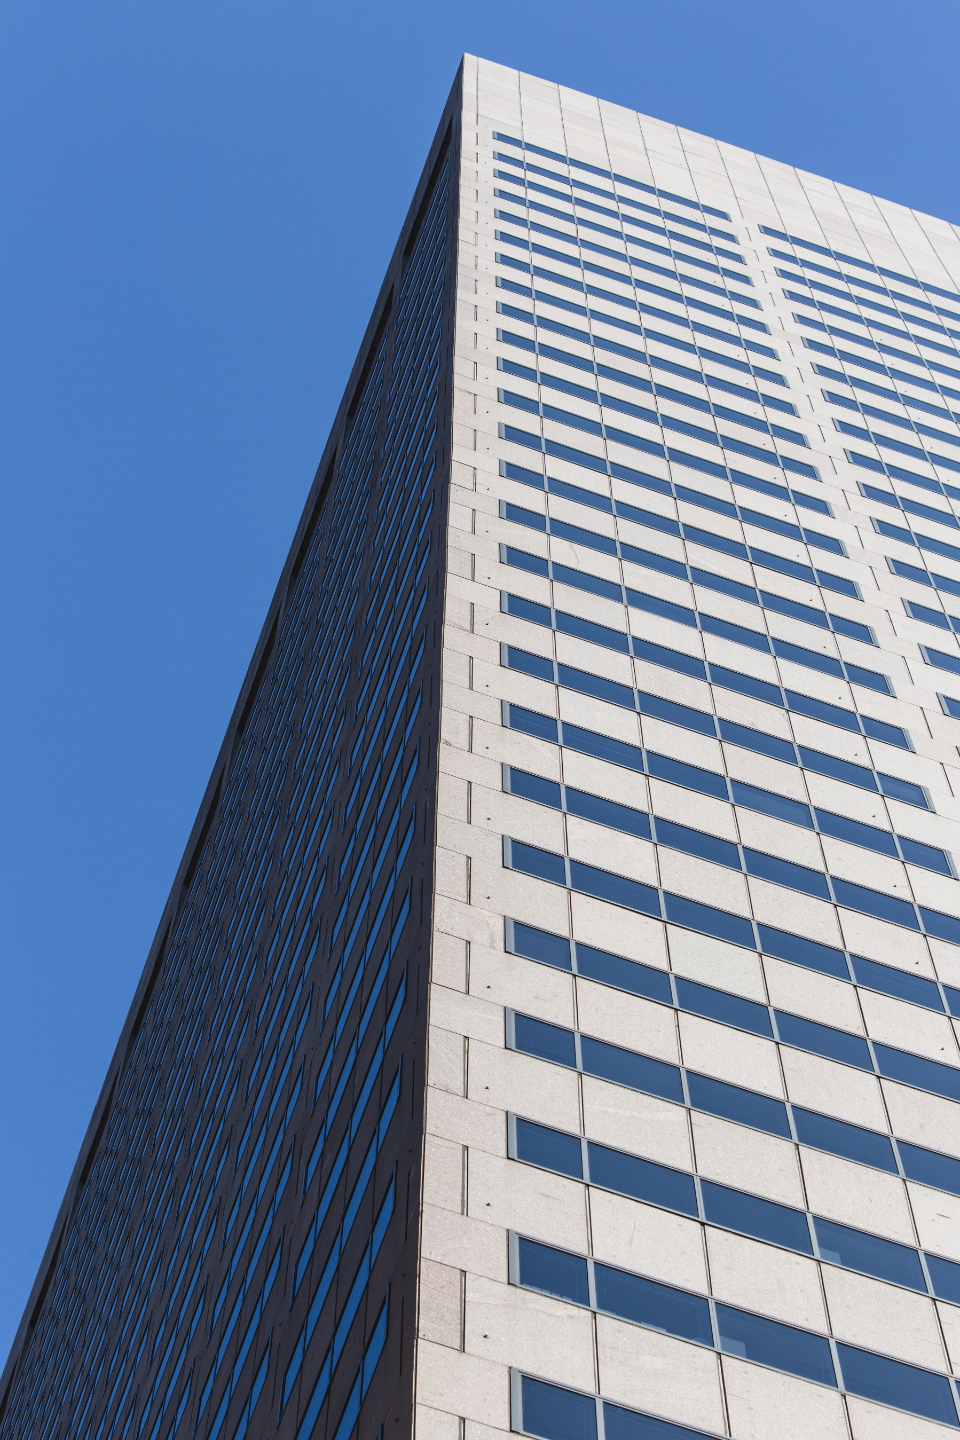 city sky downtown urban architecture daytime business perspective exterior modern structure tall building skycraper windows